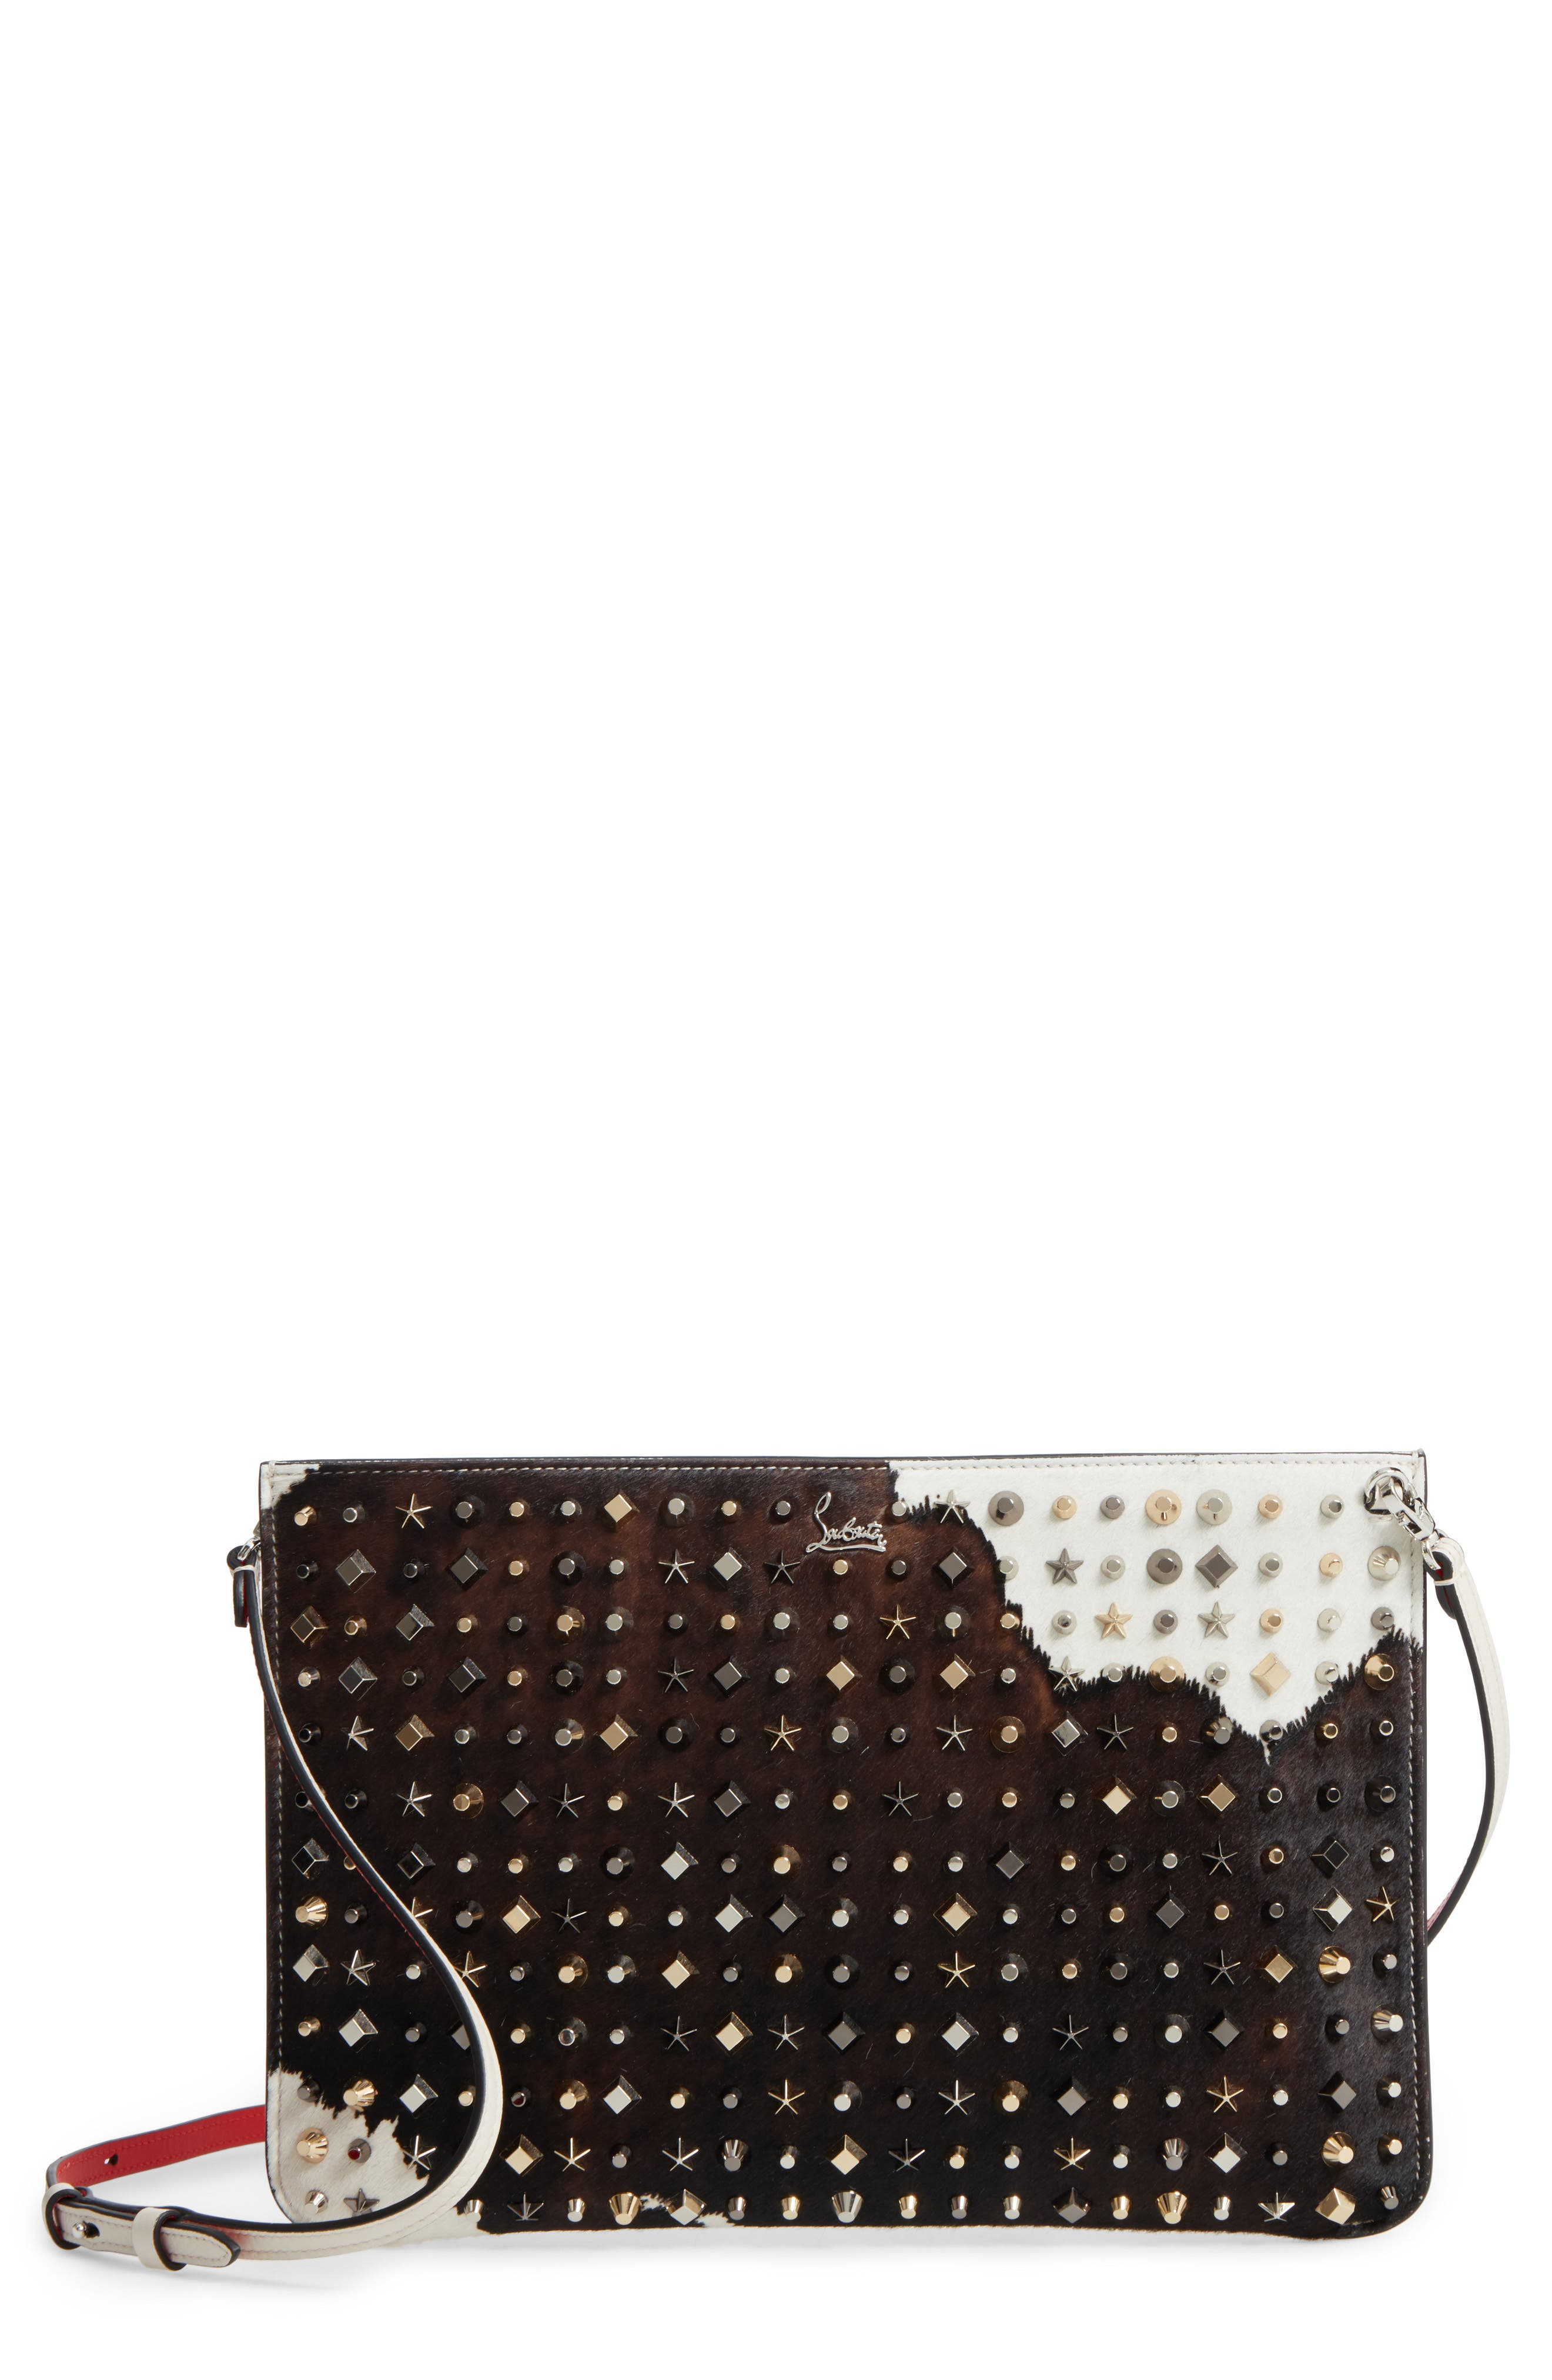 Christian Louboutin Loubiclutch Genuine Calf Hair Clutch